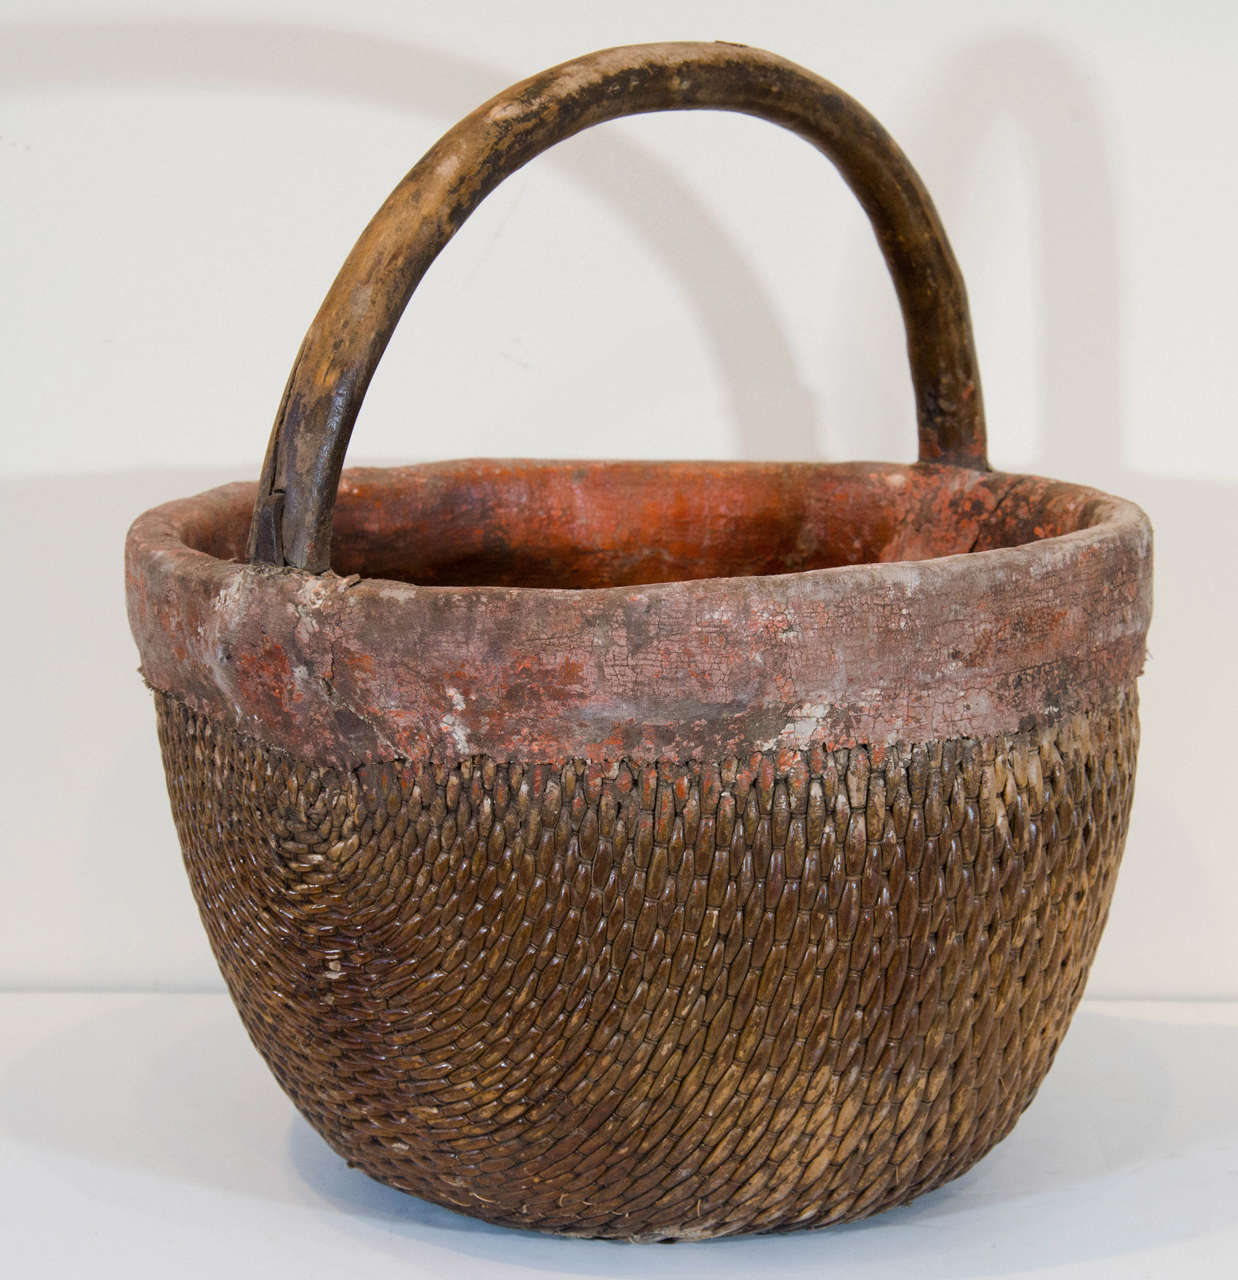 Antique Chinese woven willow basket with clay and/or fabric patches. Wonderfully worn and exhibiting 100 years of use. Only large one available. (Right in main image) B443